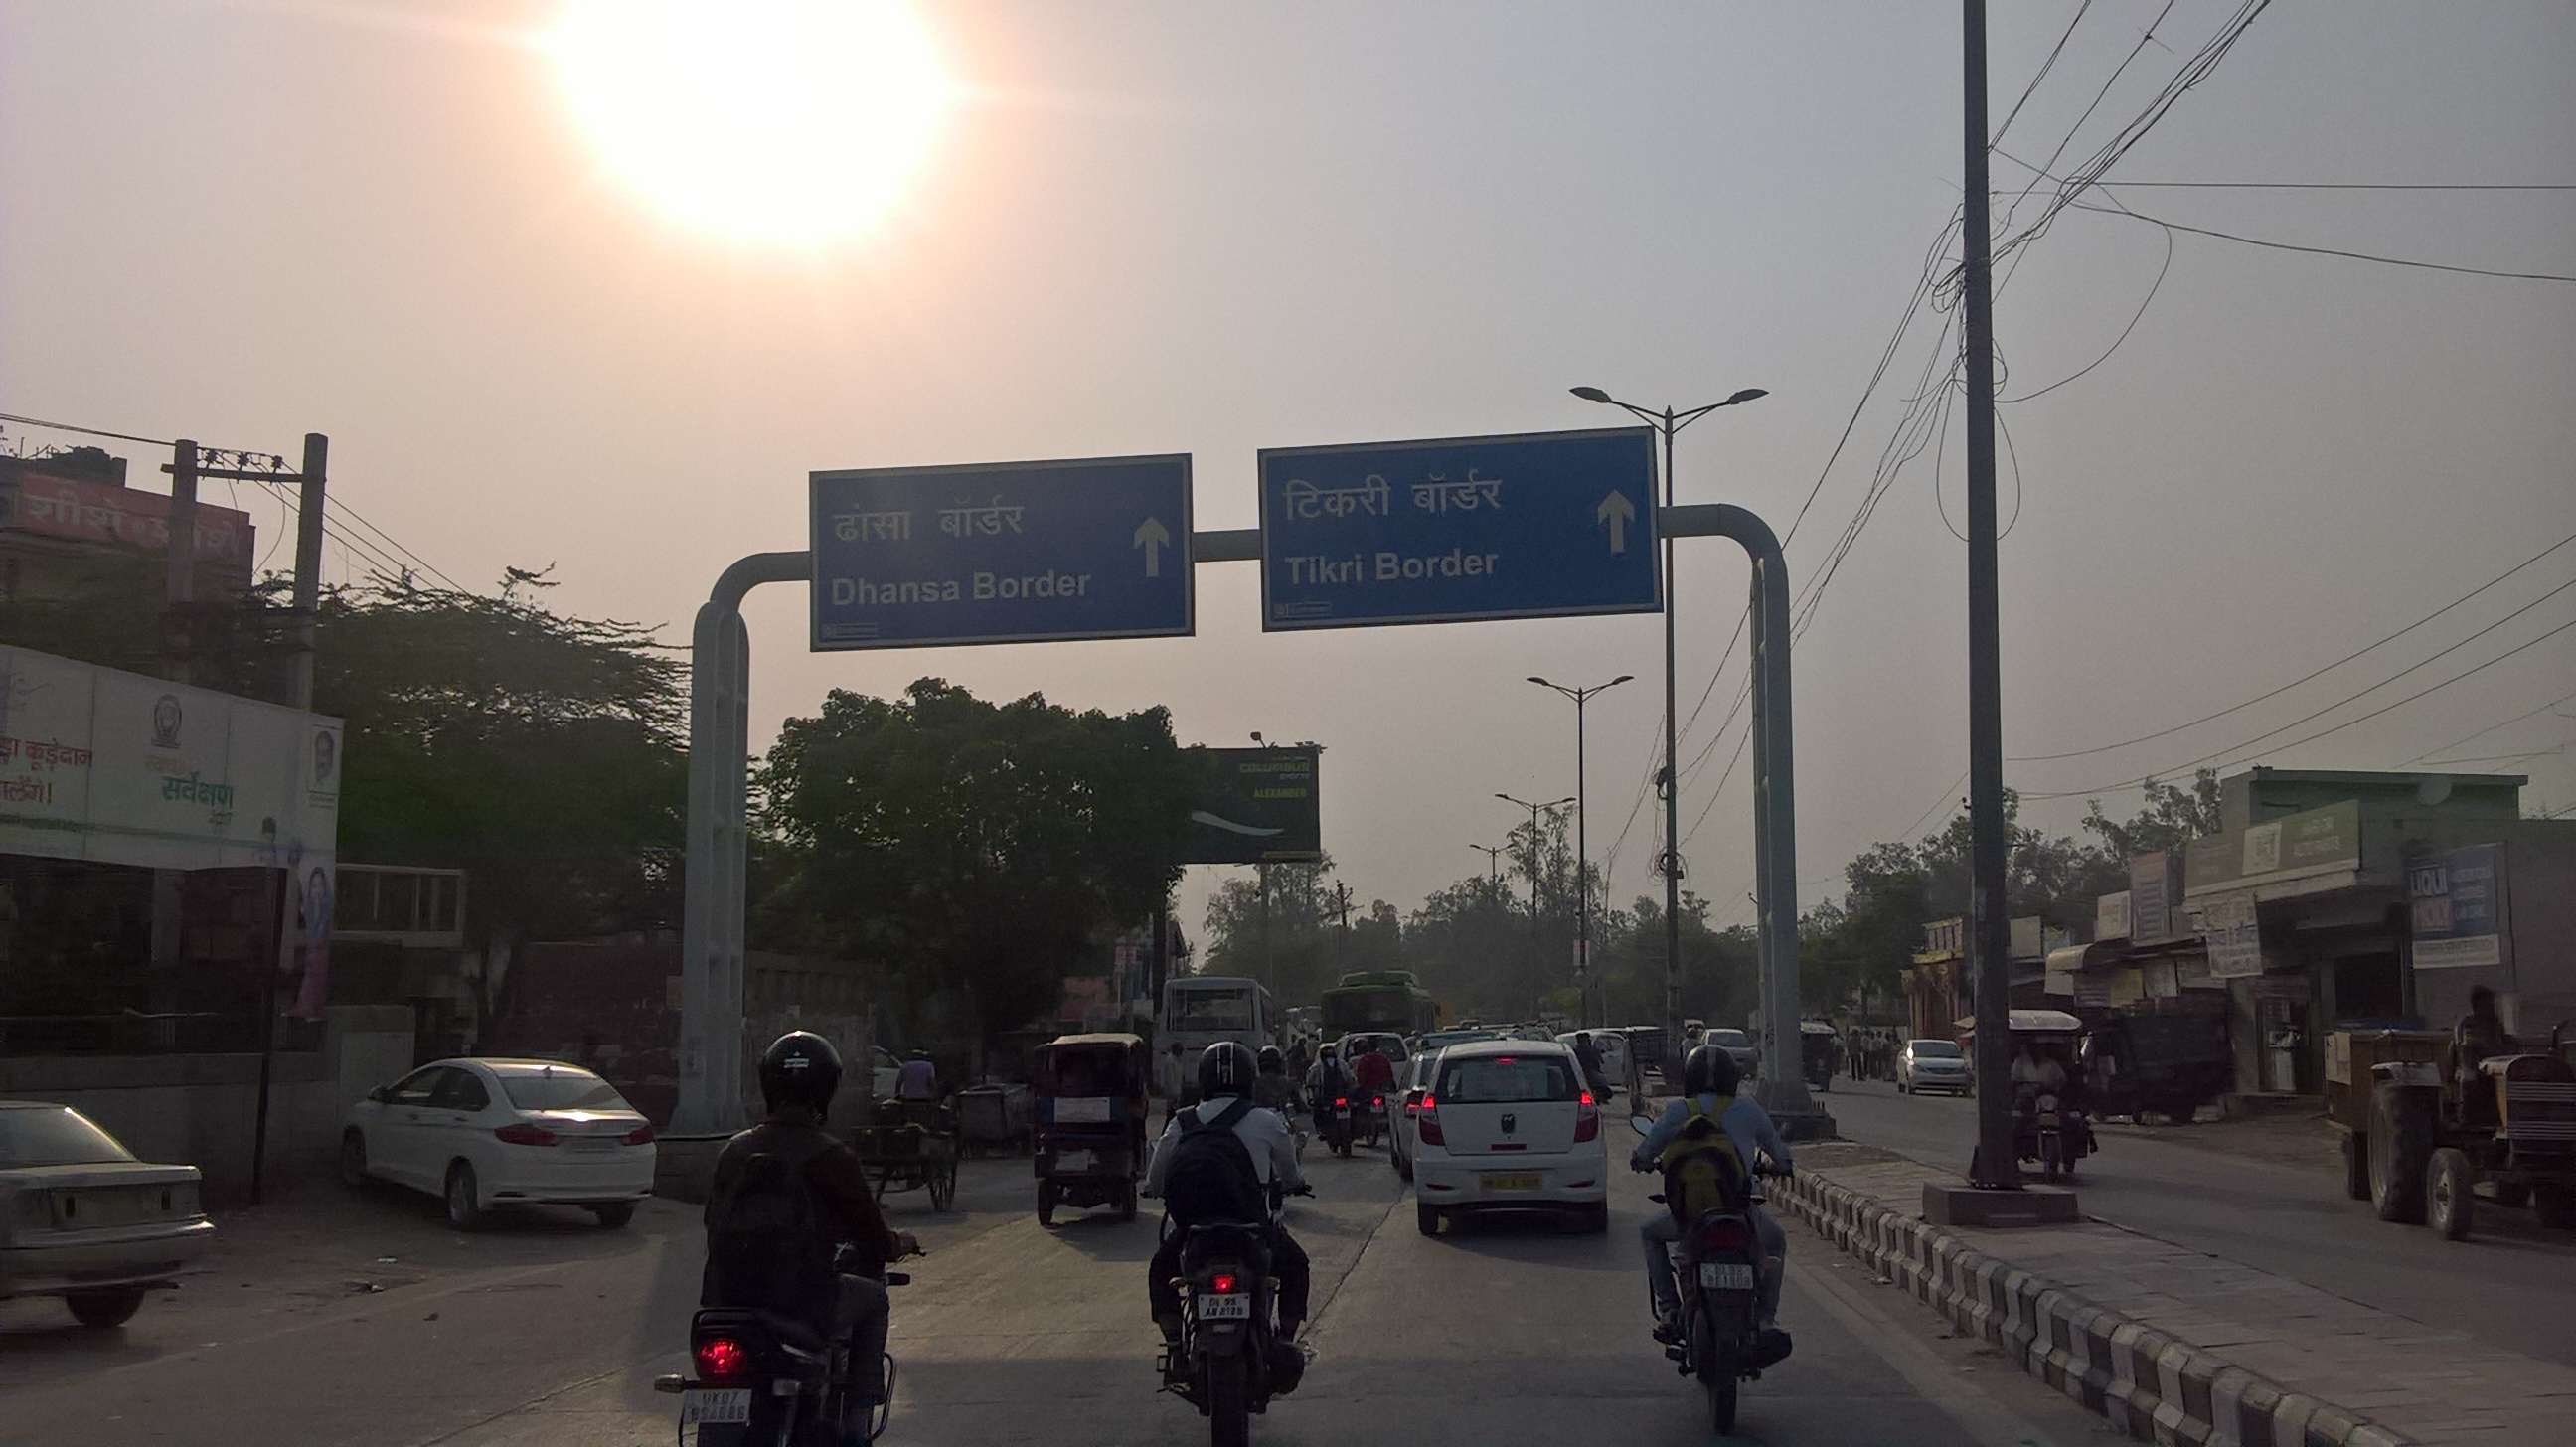 Towards-Nazafgarh.jpg